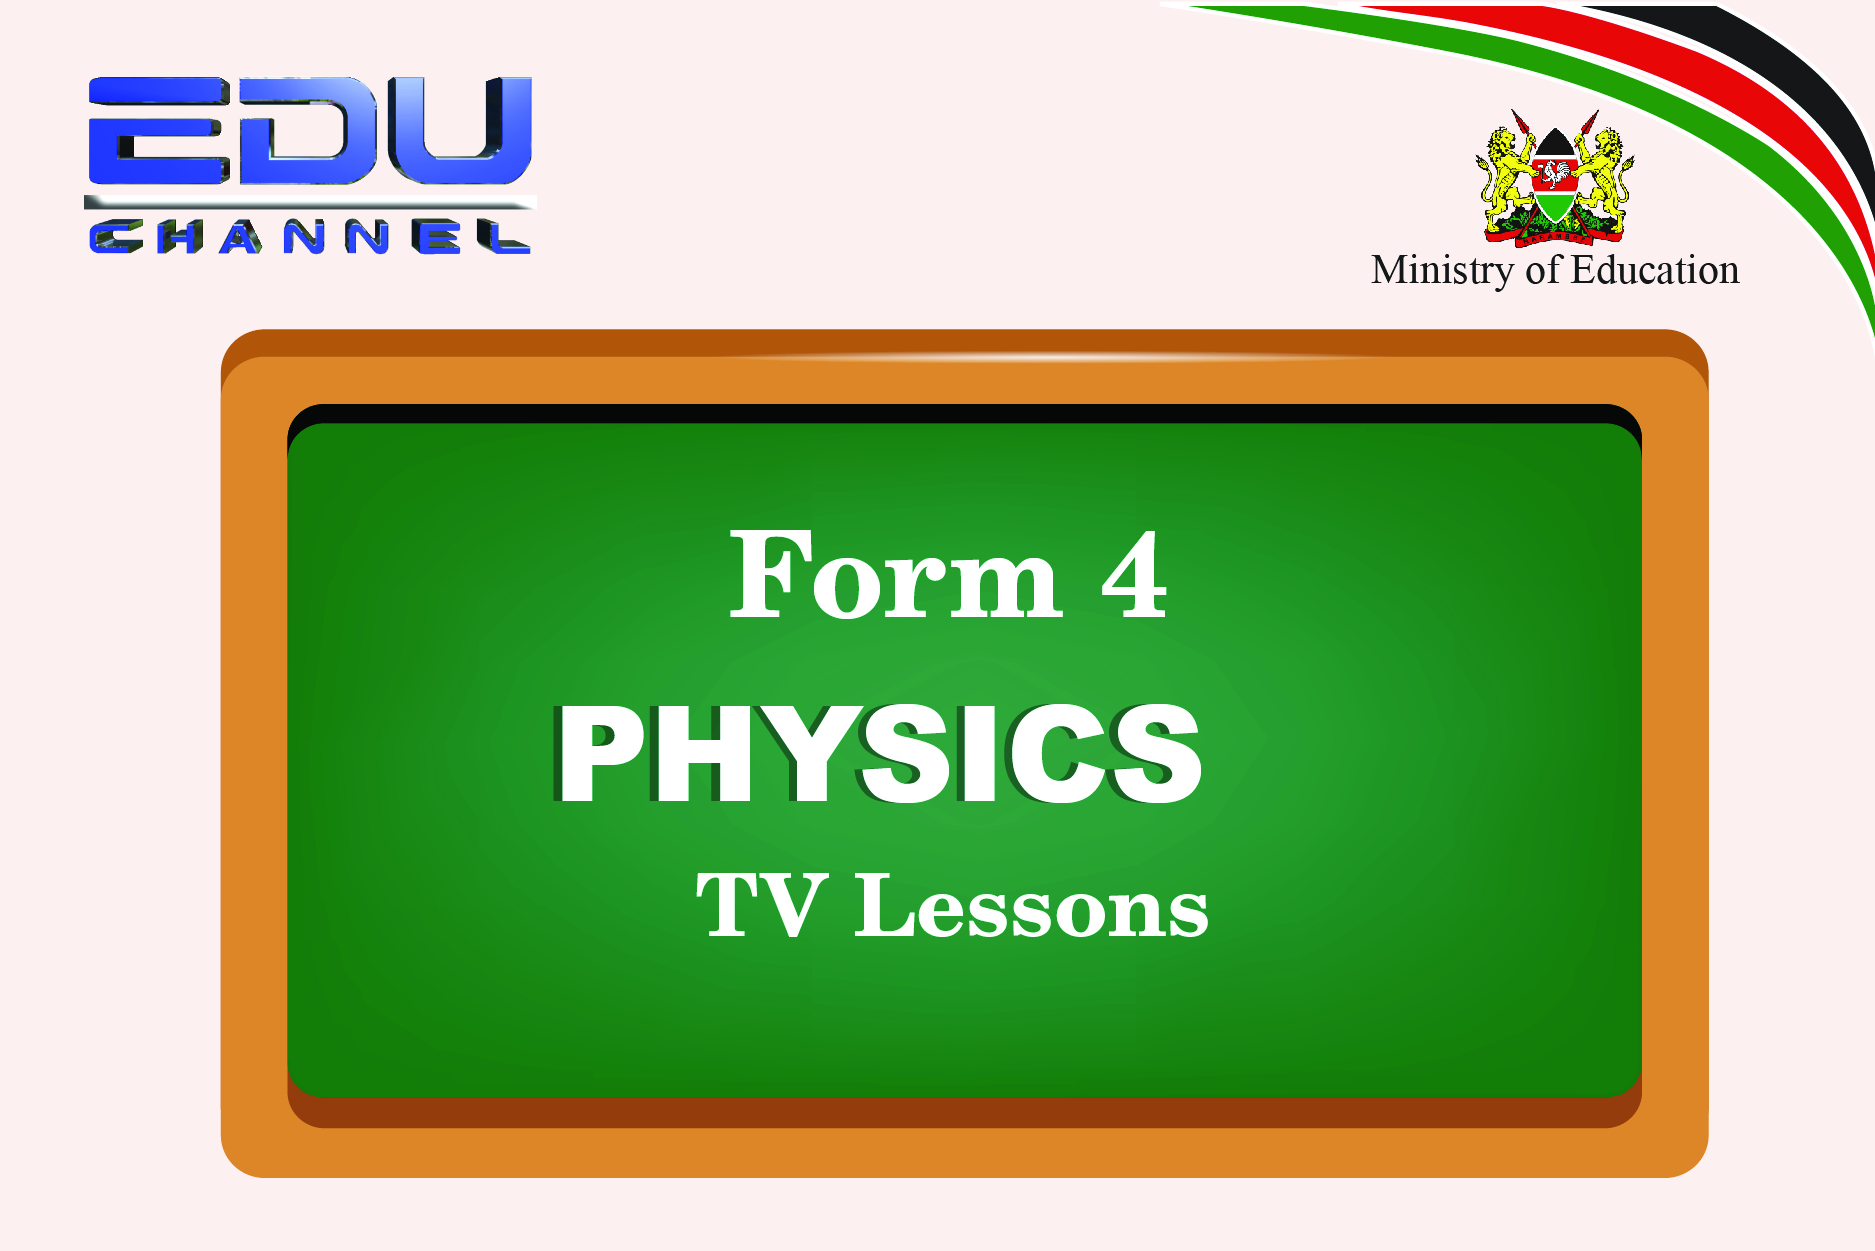 Form 4 physics Lesson 8: Cathode  rays